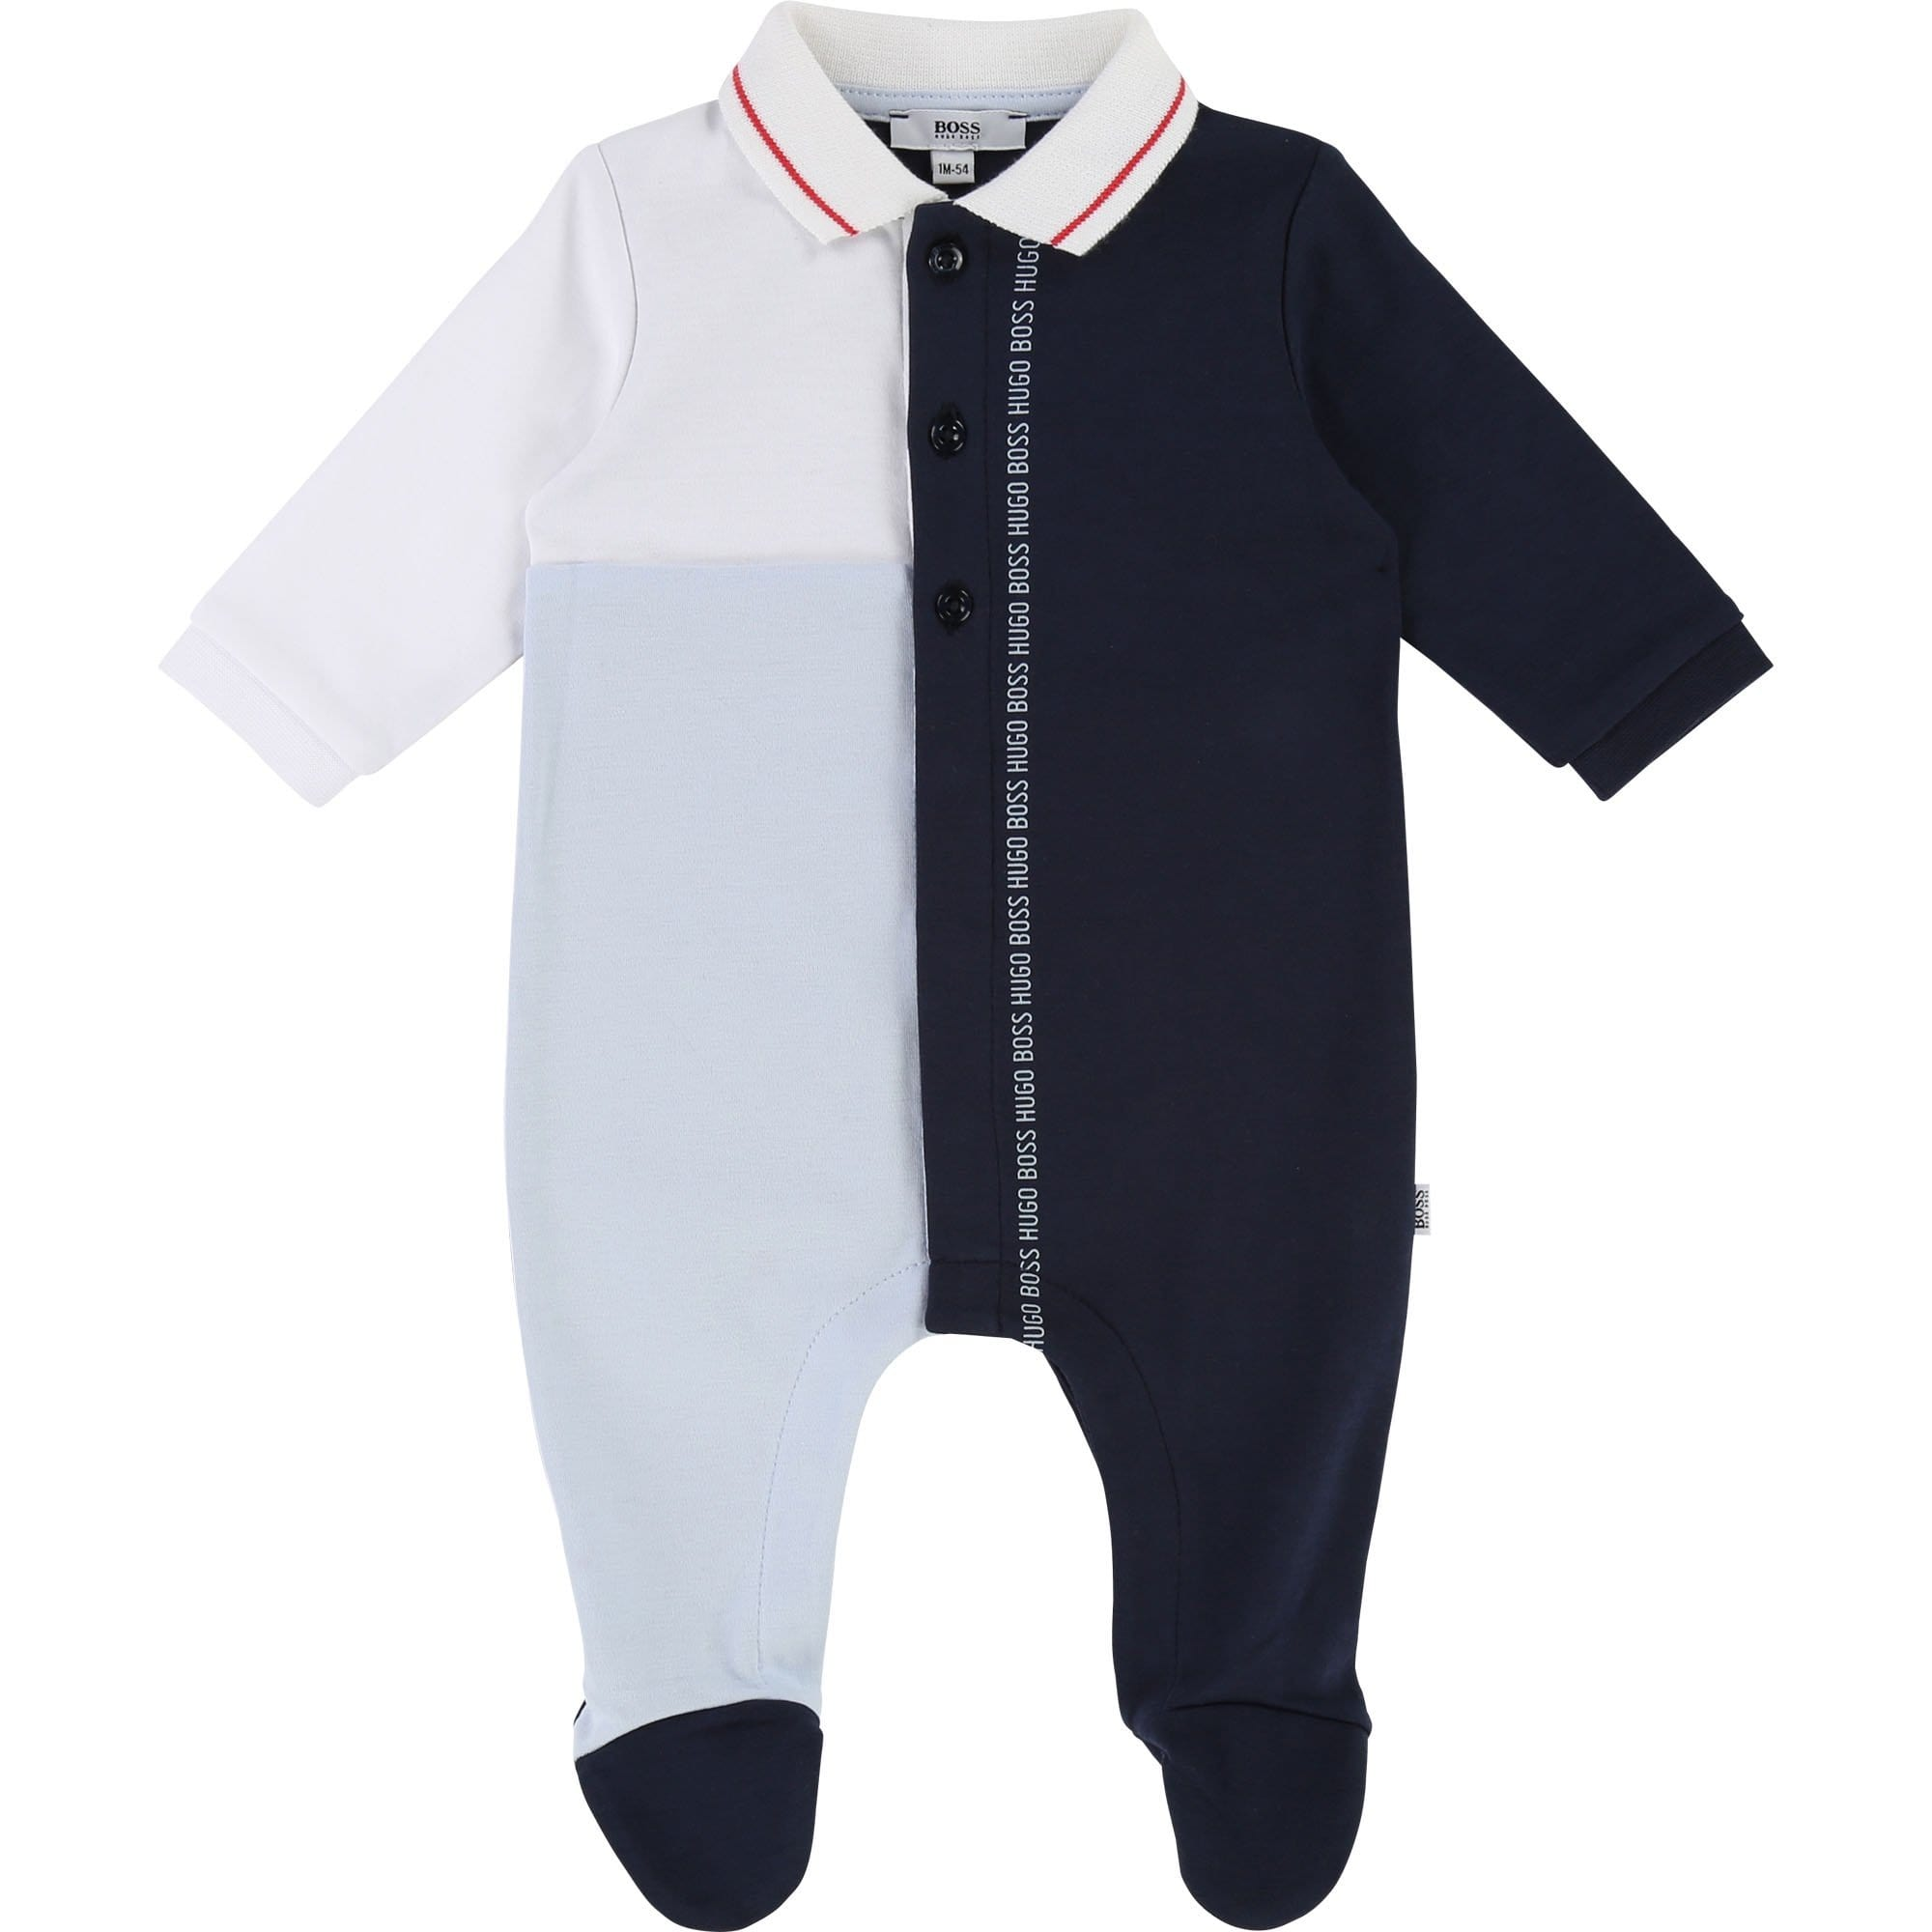 Hugo Boss Baby Onsie Navy/Pale Blue (4696838799491)